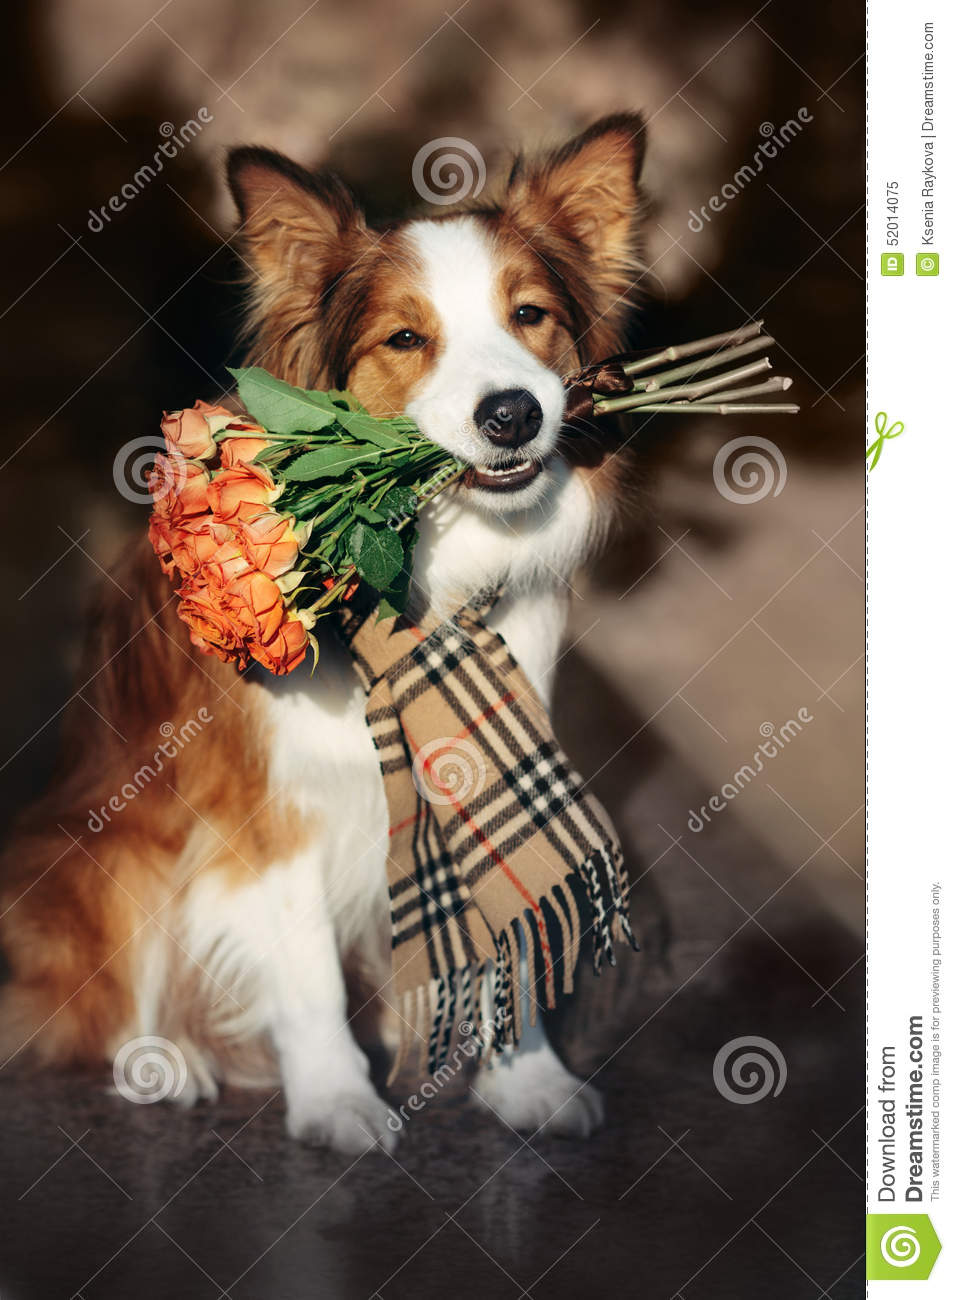 Red Border Collie dog holding a bouquet of flowers